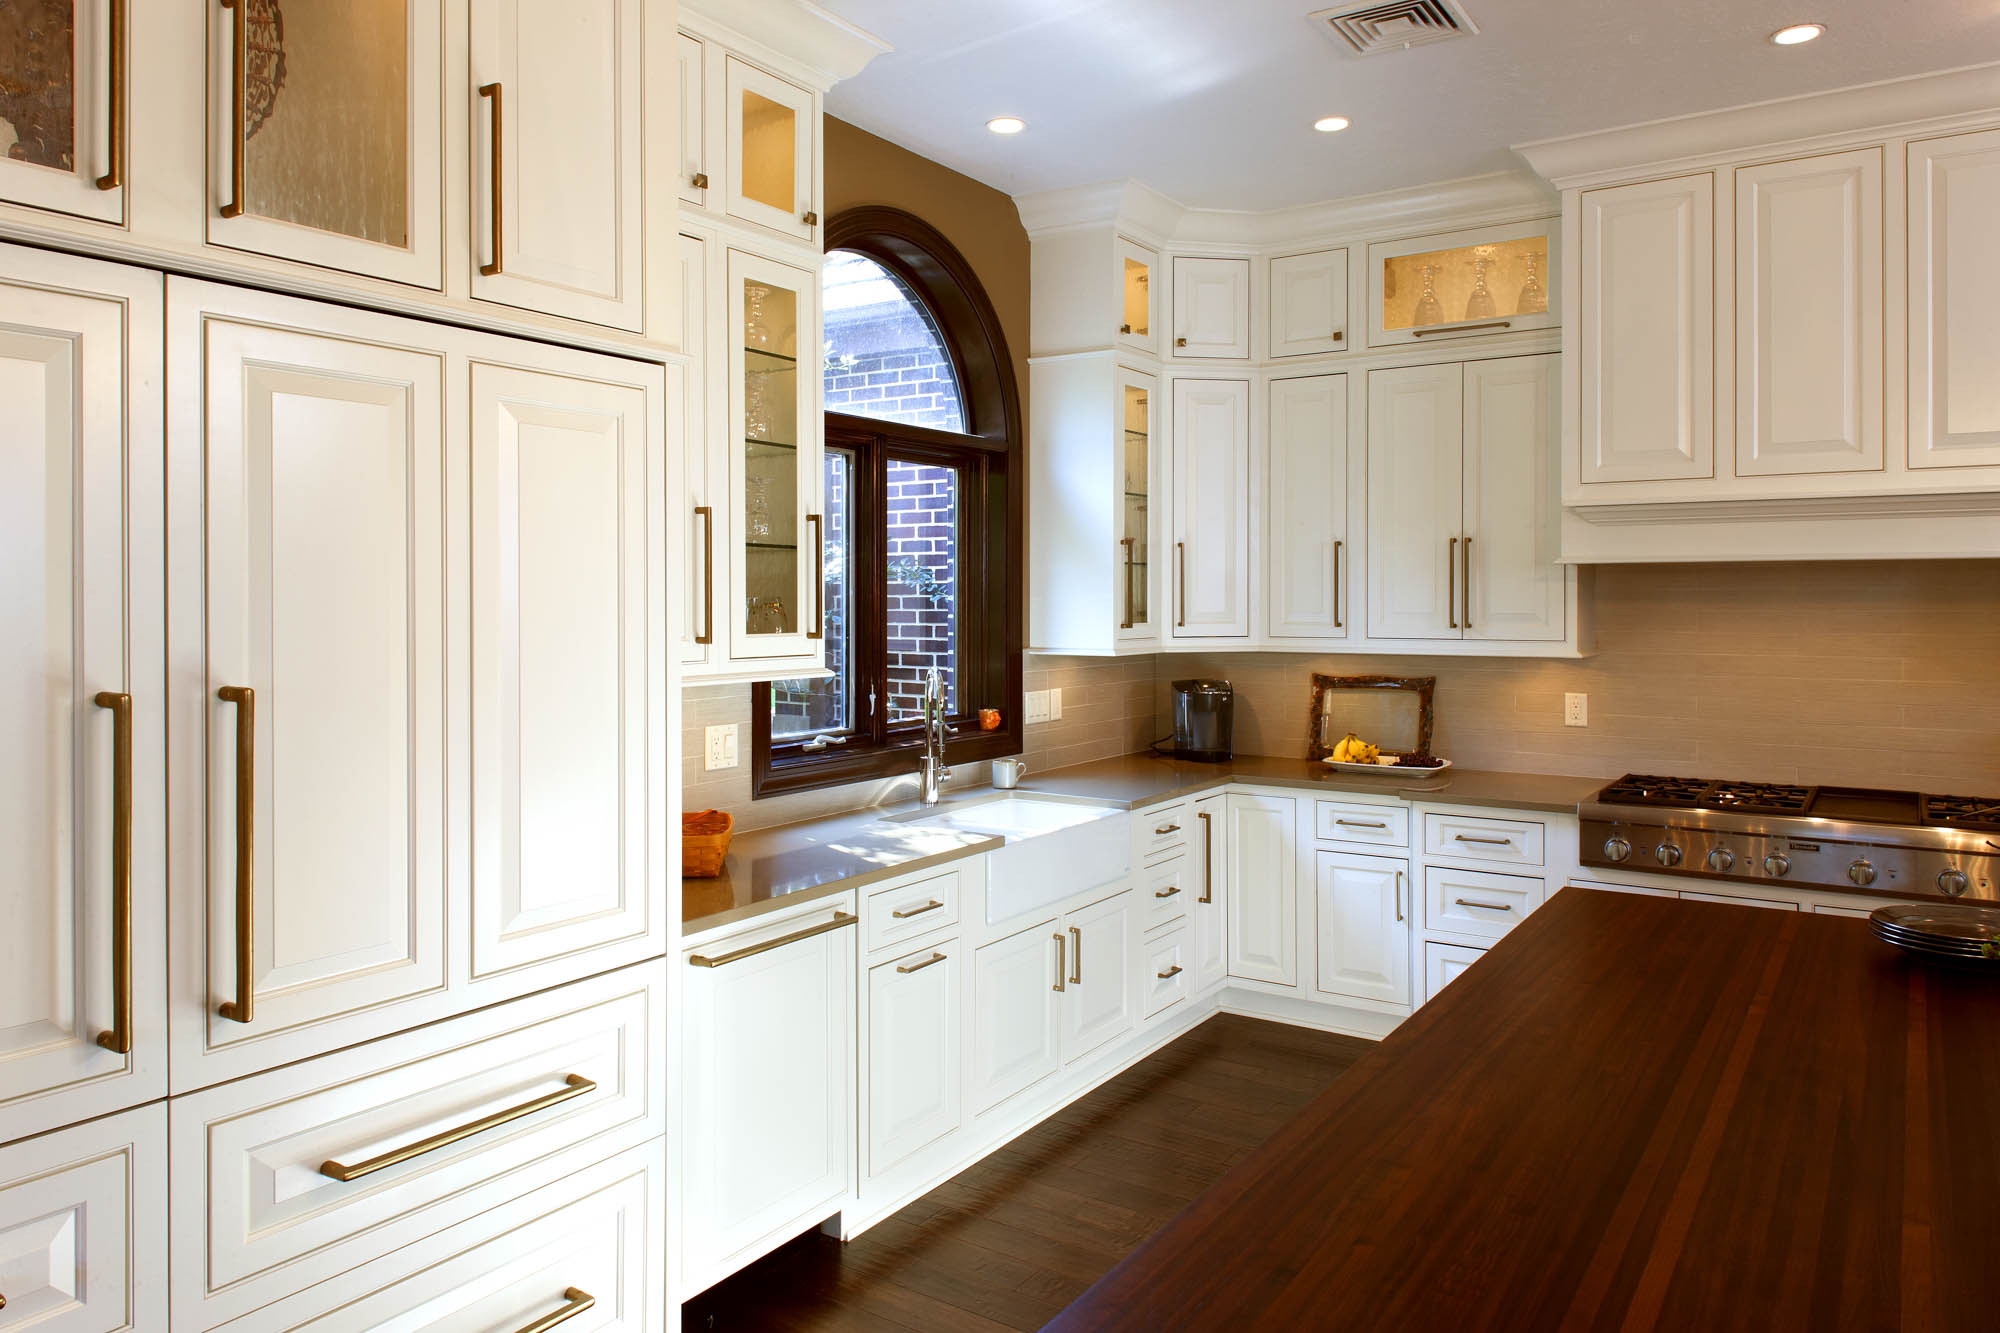 Painted kitchen cabinets in Soft Cream by Showplace Cabinetry - view 2